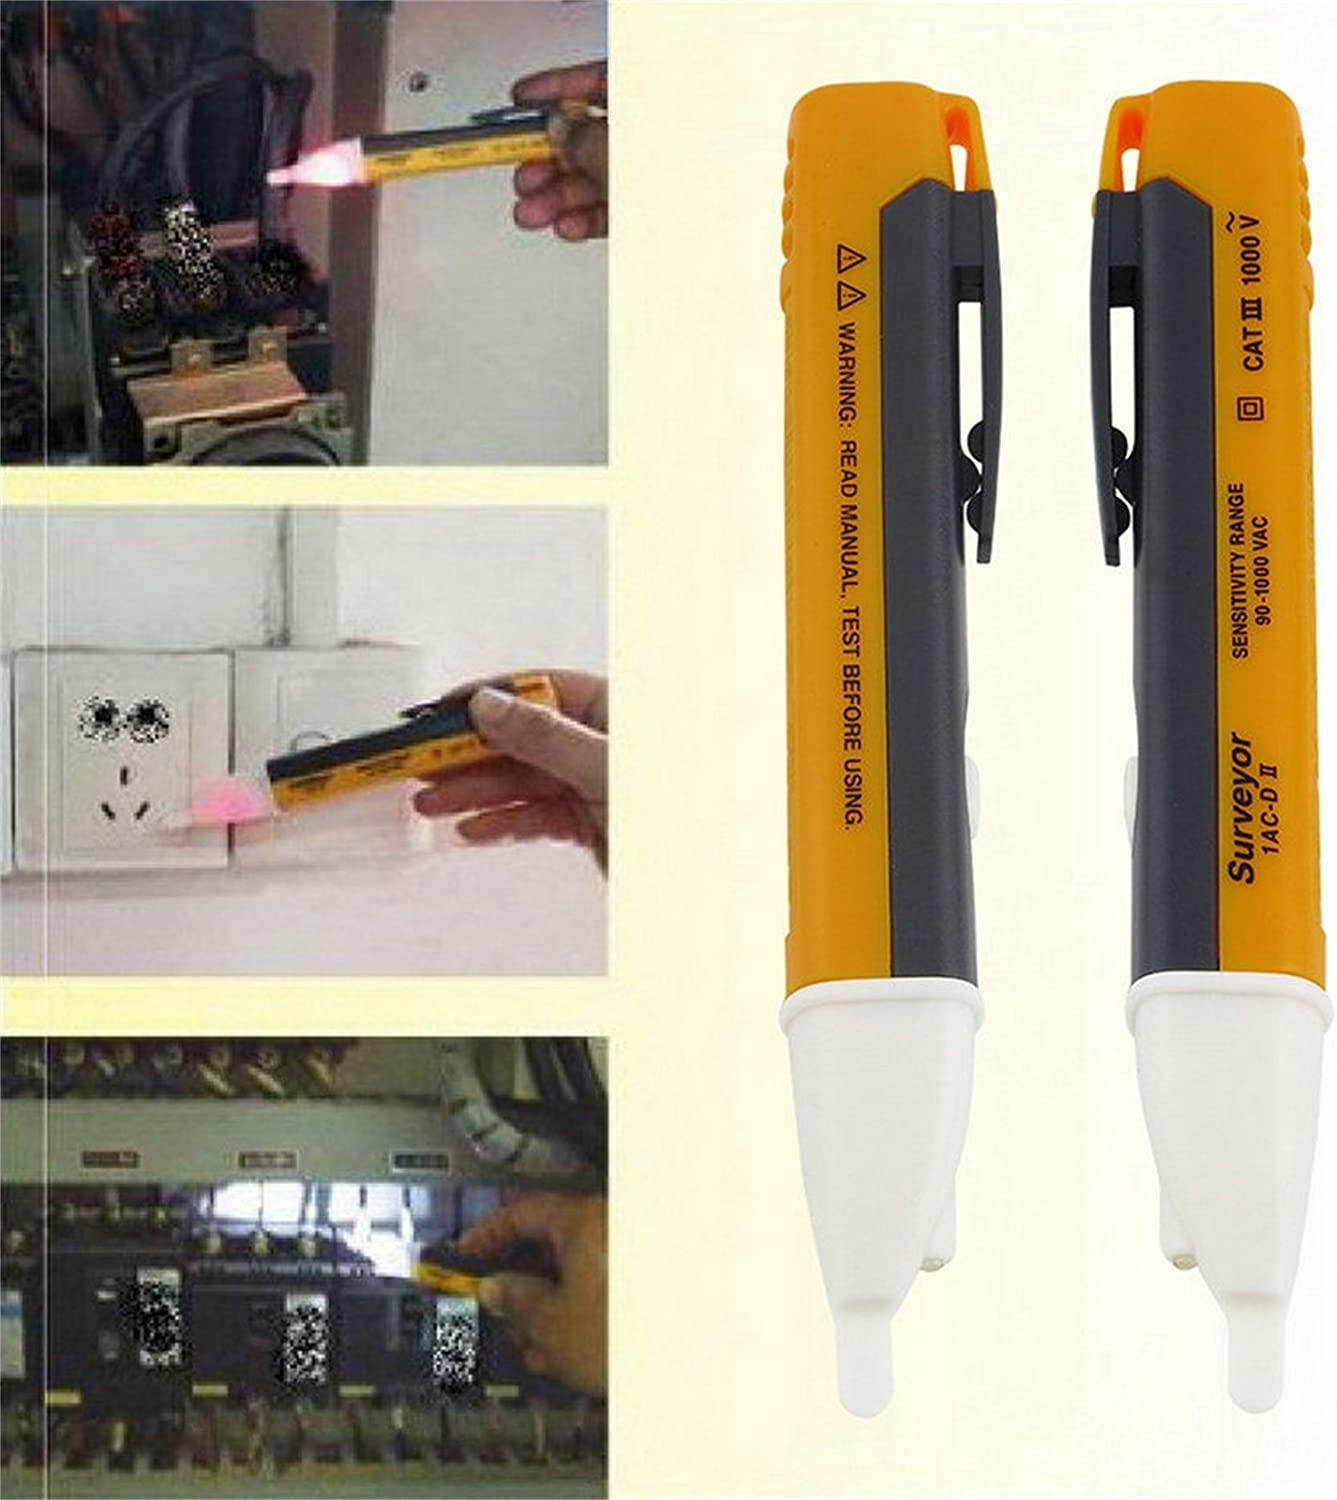 tes-151 AC DC Solenoid Voltage Tester  Electric Electrical Volt Testing Probe